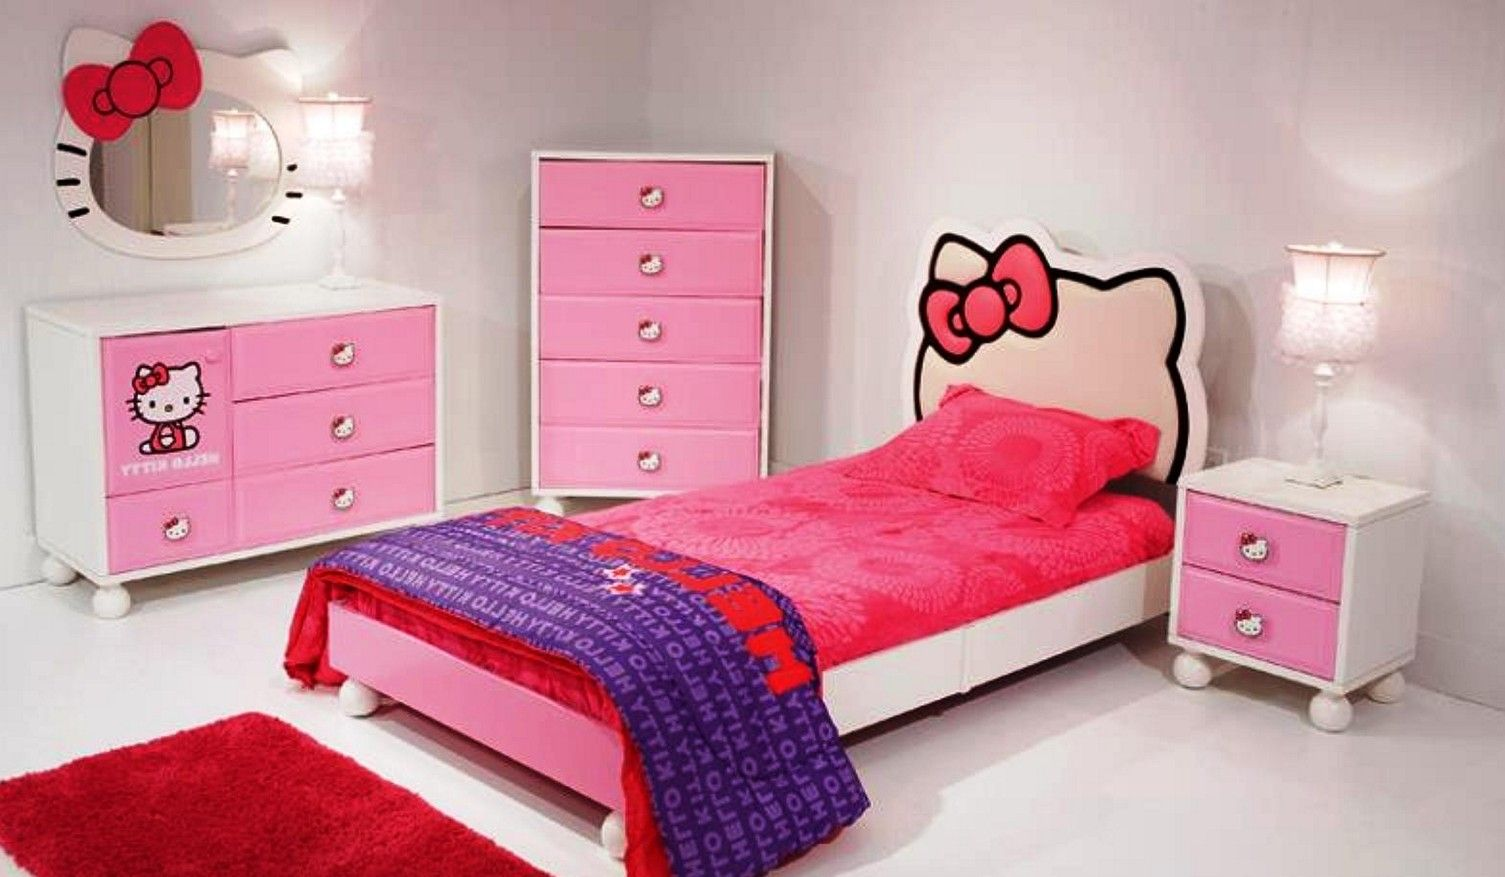 20 Hello Kitty Bedroom Decor Ideas To Make Your Bedroom More Cute Awesome Hello Kitty Bedroom Designs Review